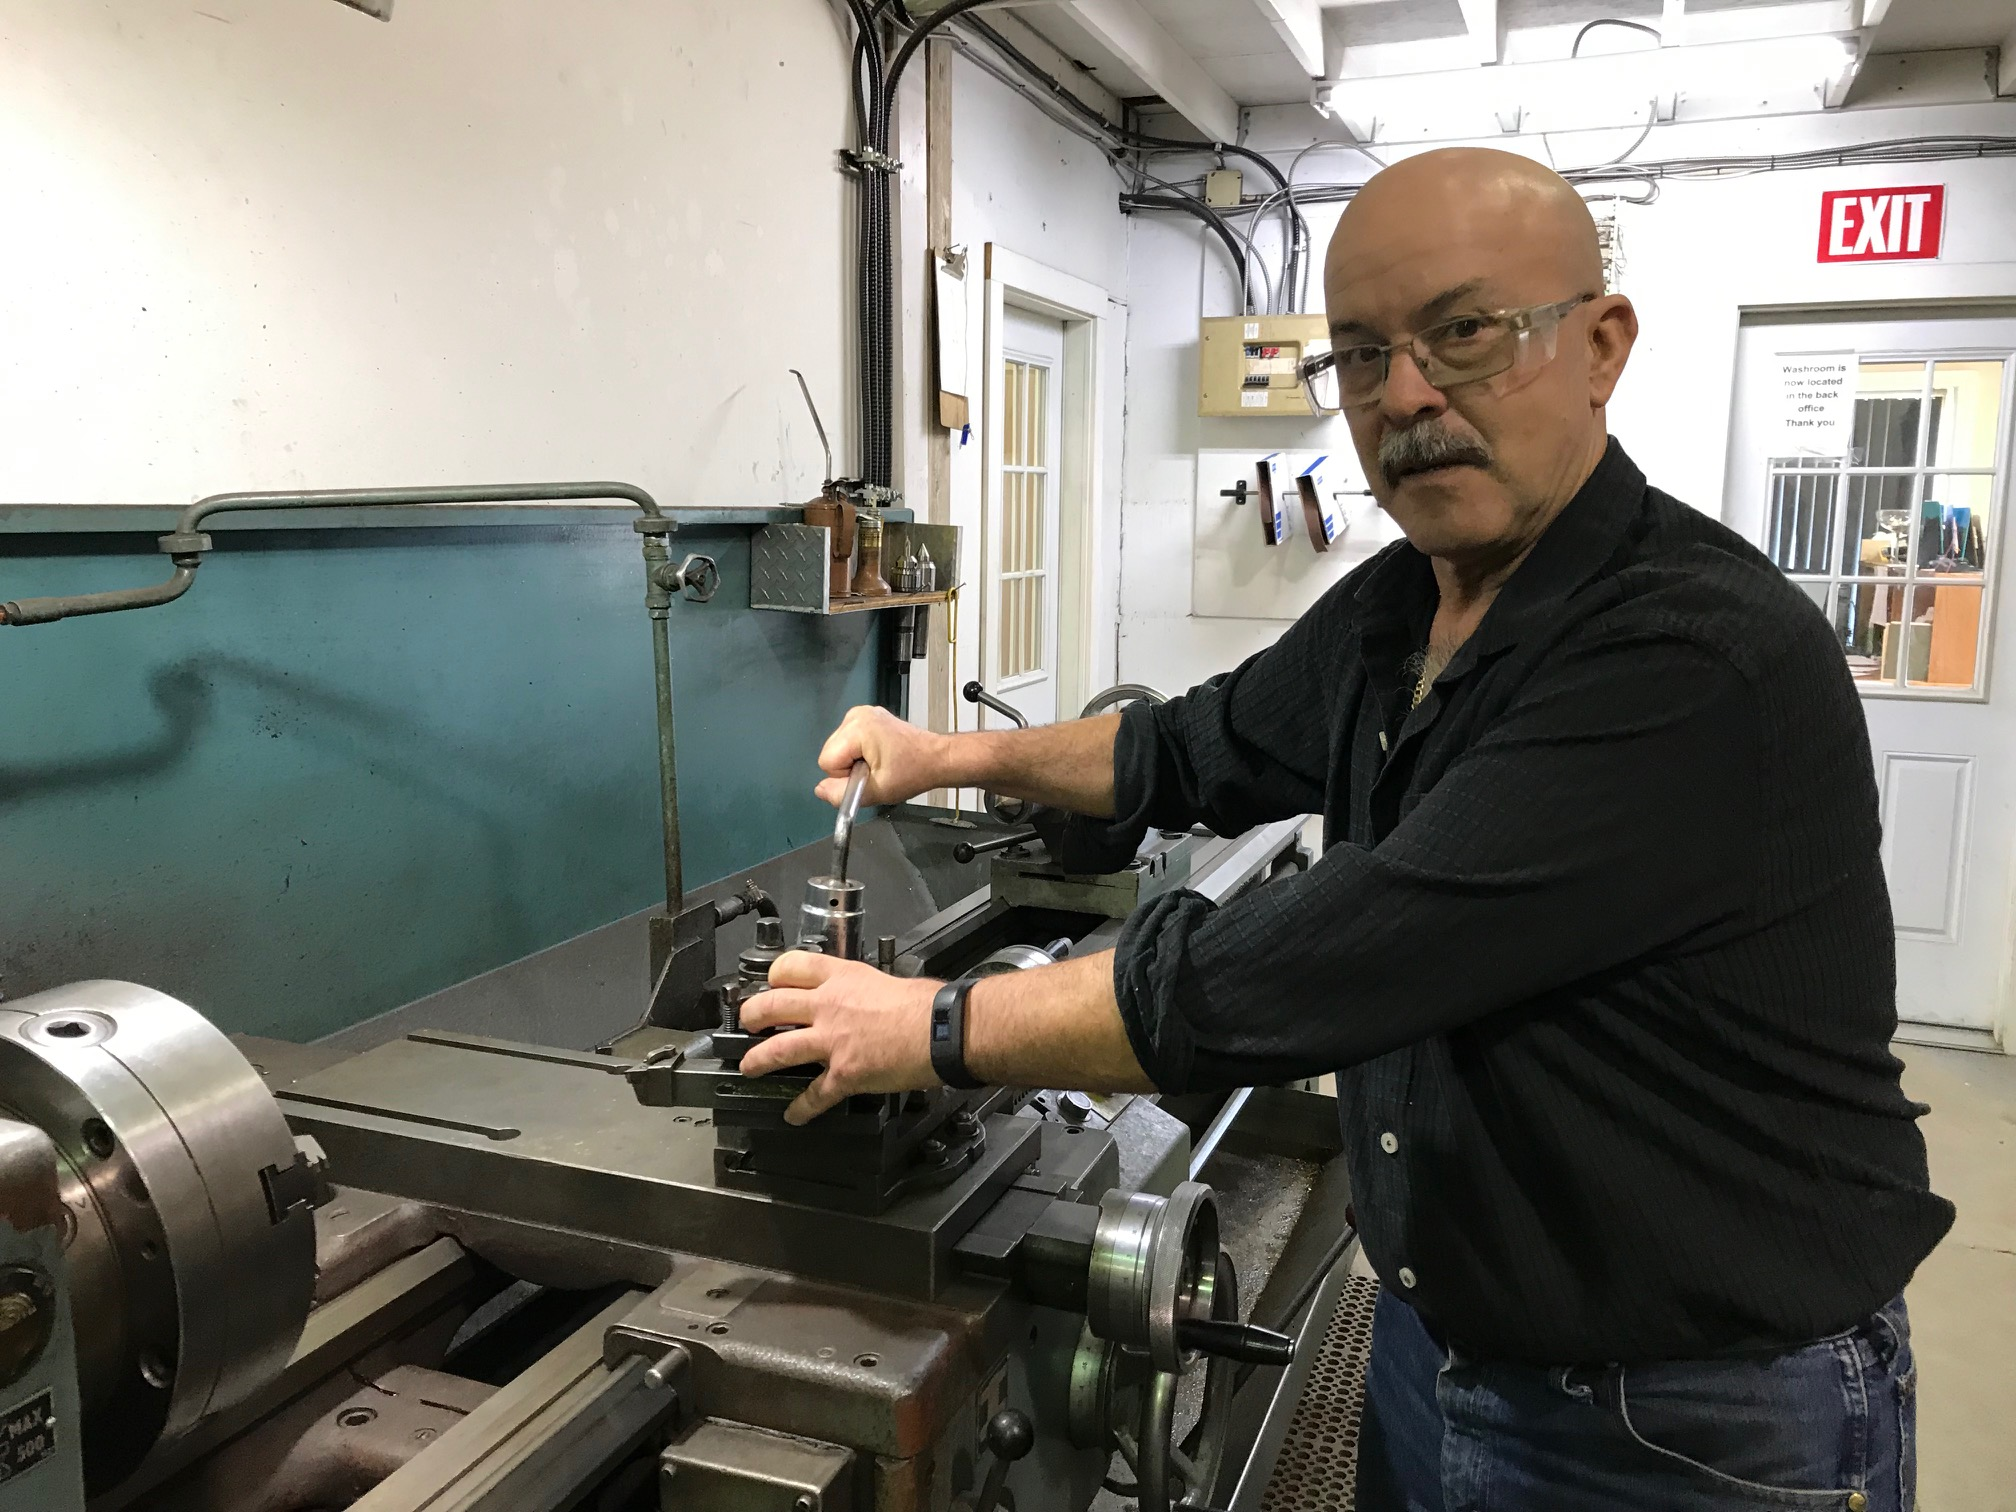 Paow News: Local Business Gets Major Diamond Project Contract